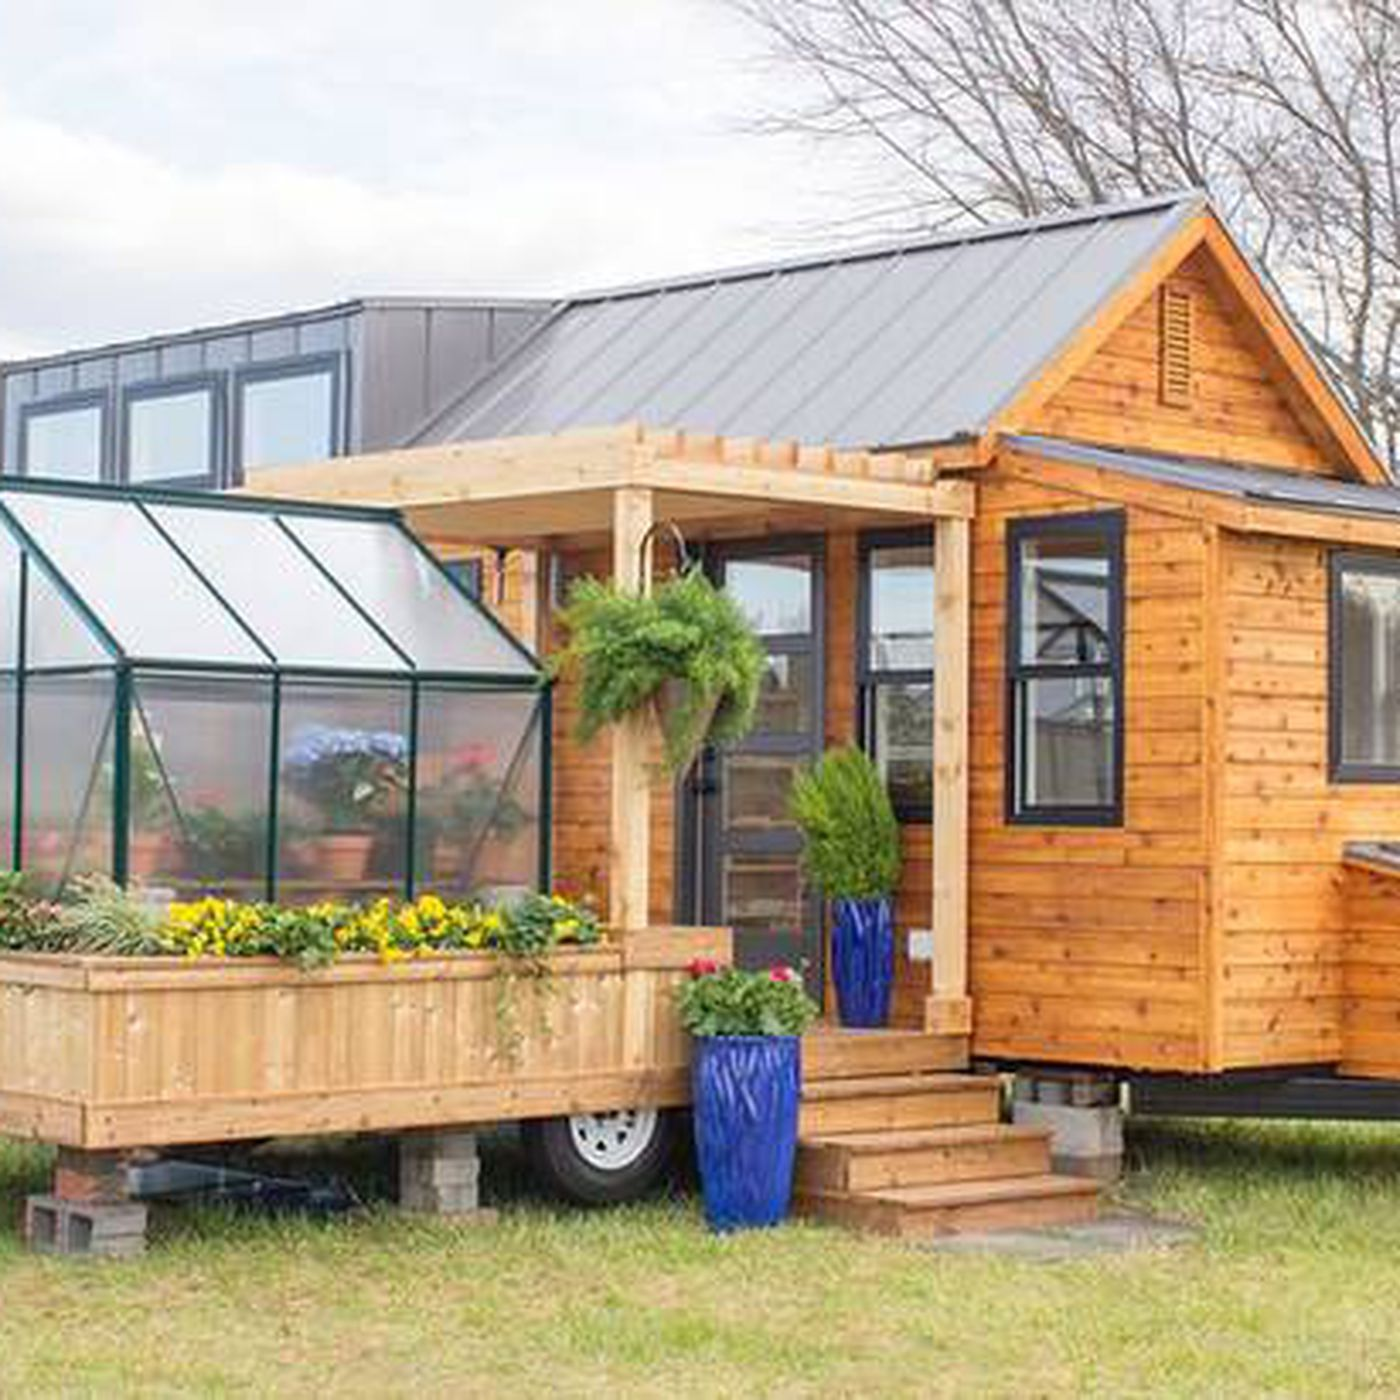 Tiny house comes with a greenhouse and porch - Curbed